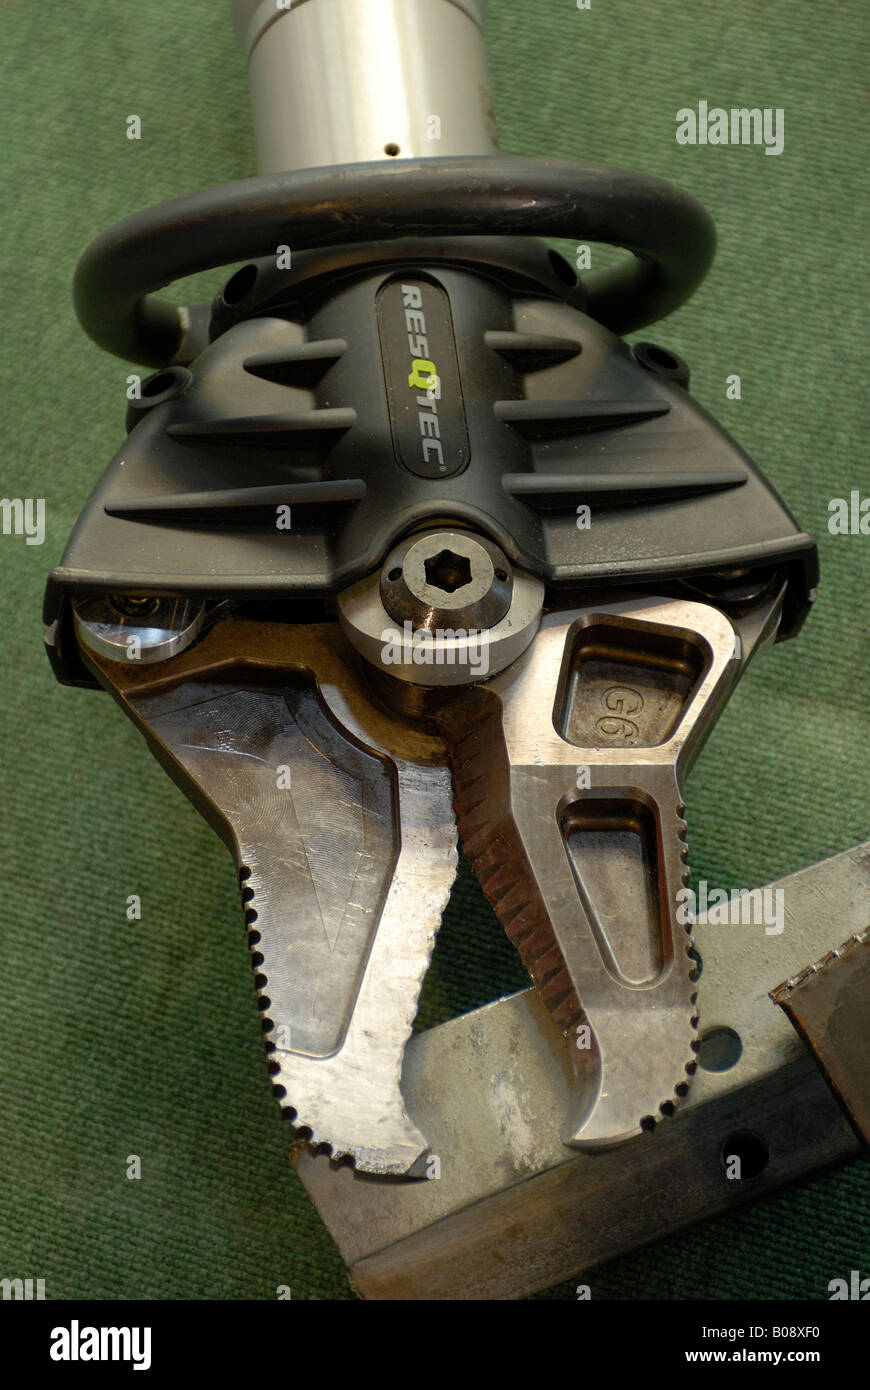 Jaws of life, hydraulic spreader, rescue tool Stock Photo